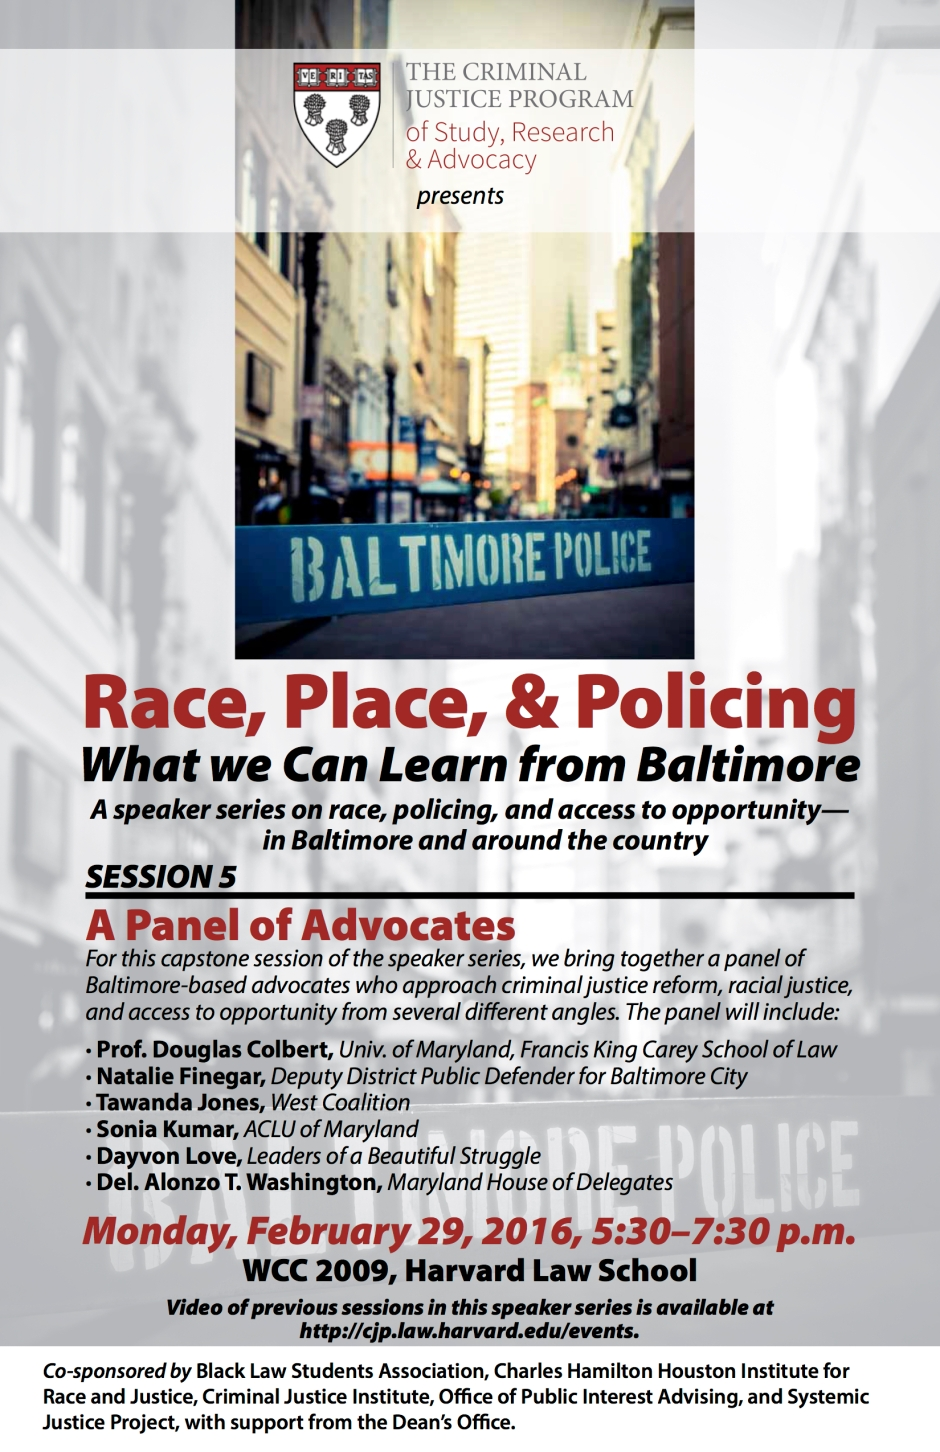 CJPSRA Poster-Baltimore Speaker Series-Session 5 copy